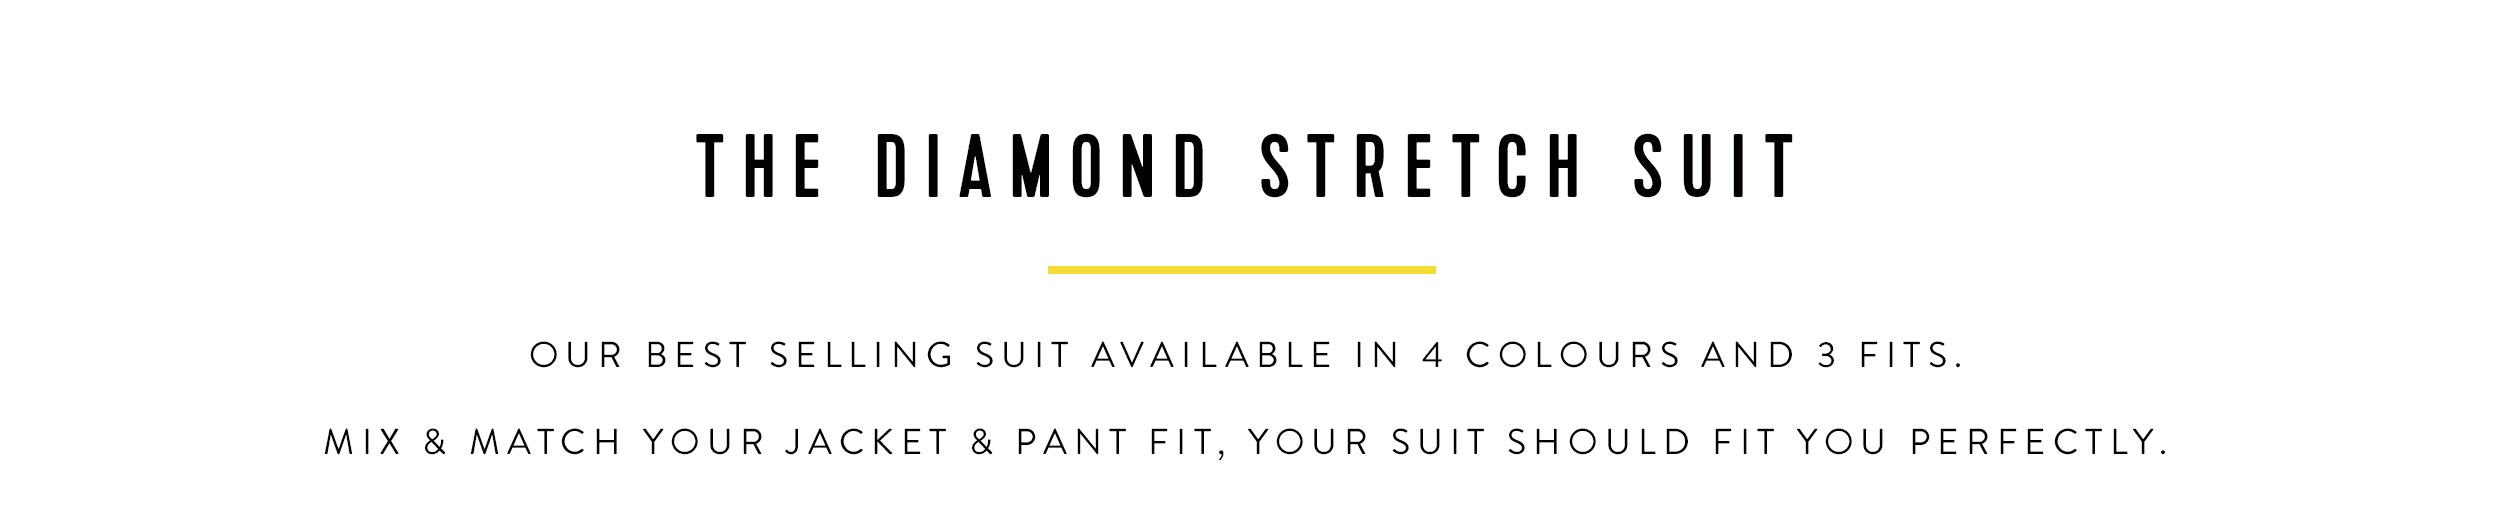 Shop The Diamond Suit | Available in 4 colours